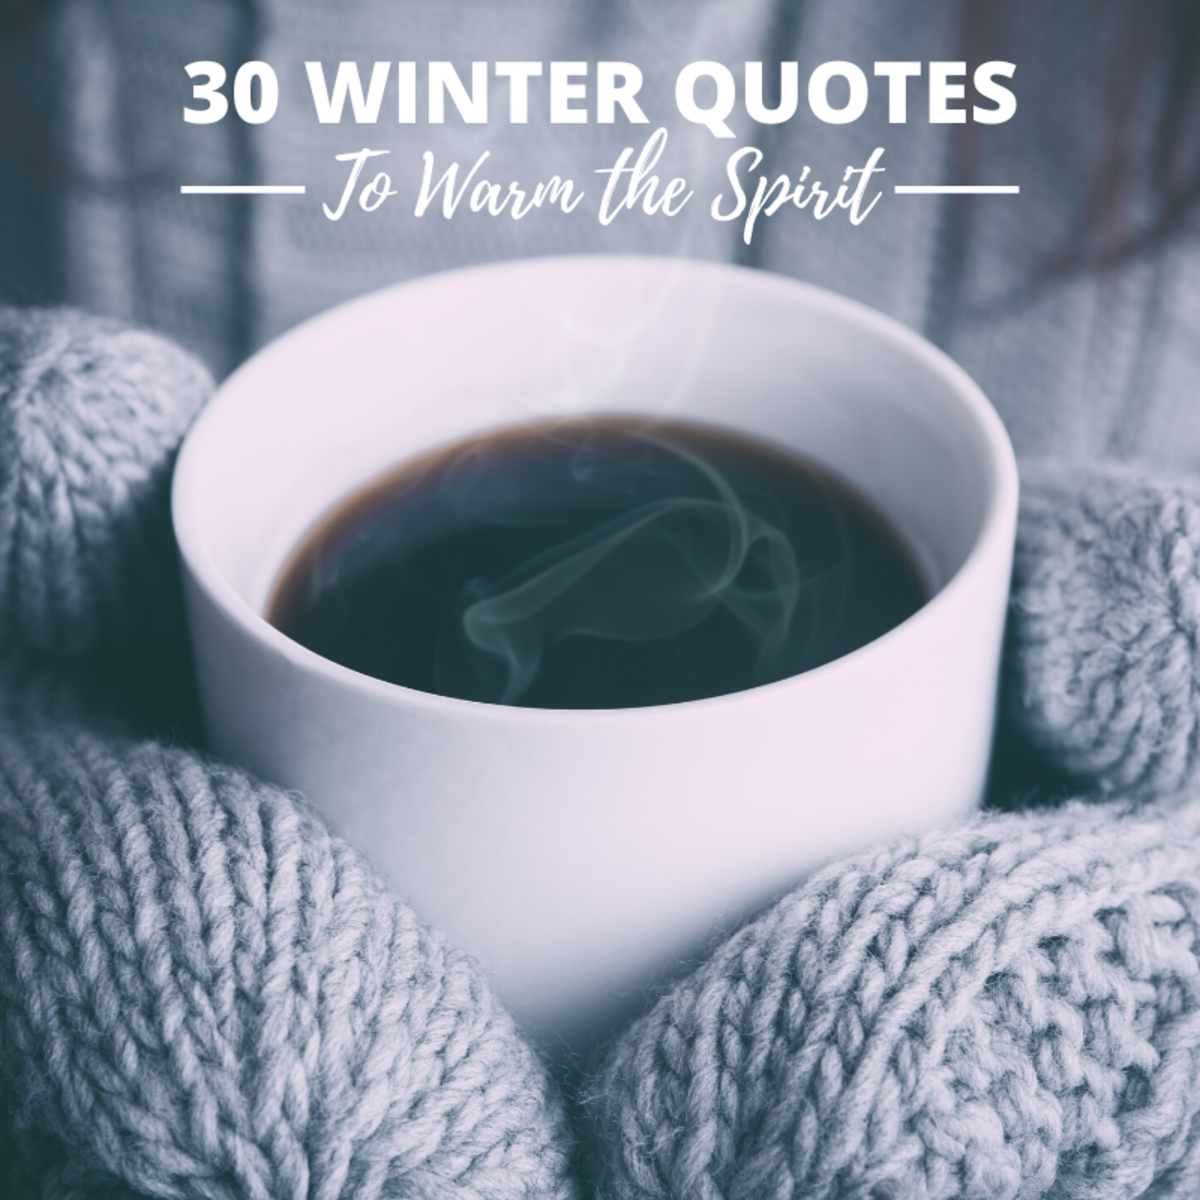 30 Winter Quotes With Warm Sentiments